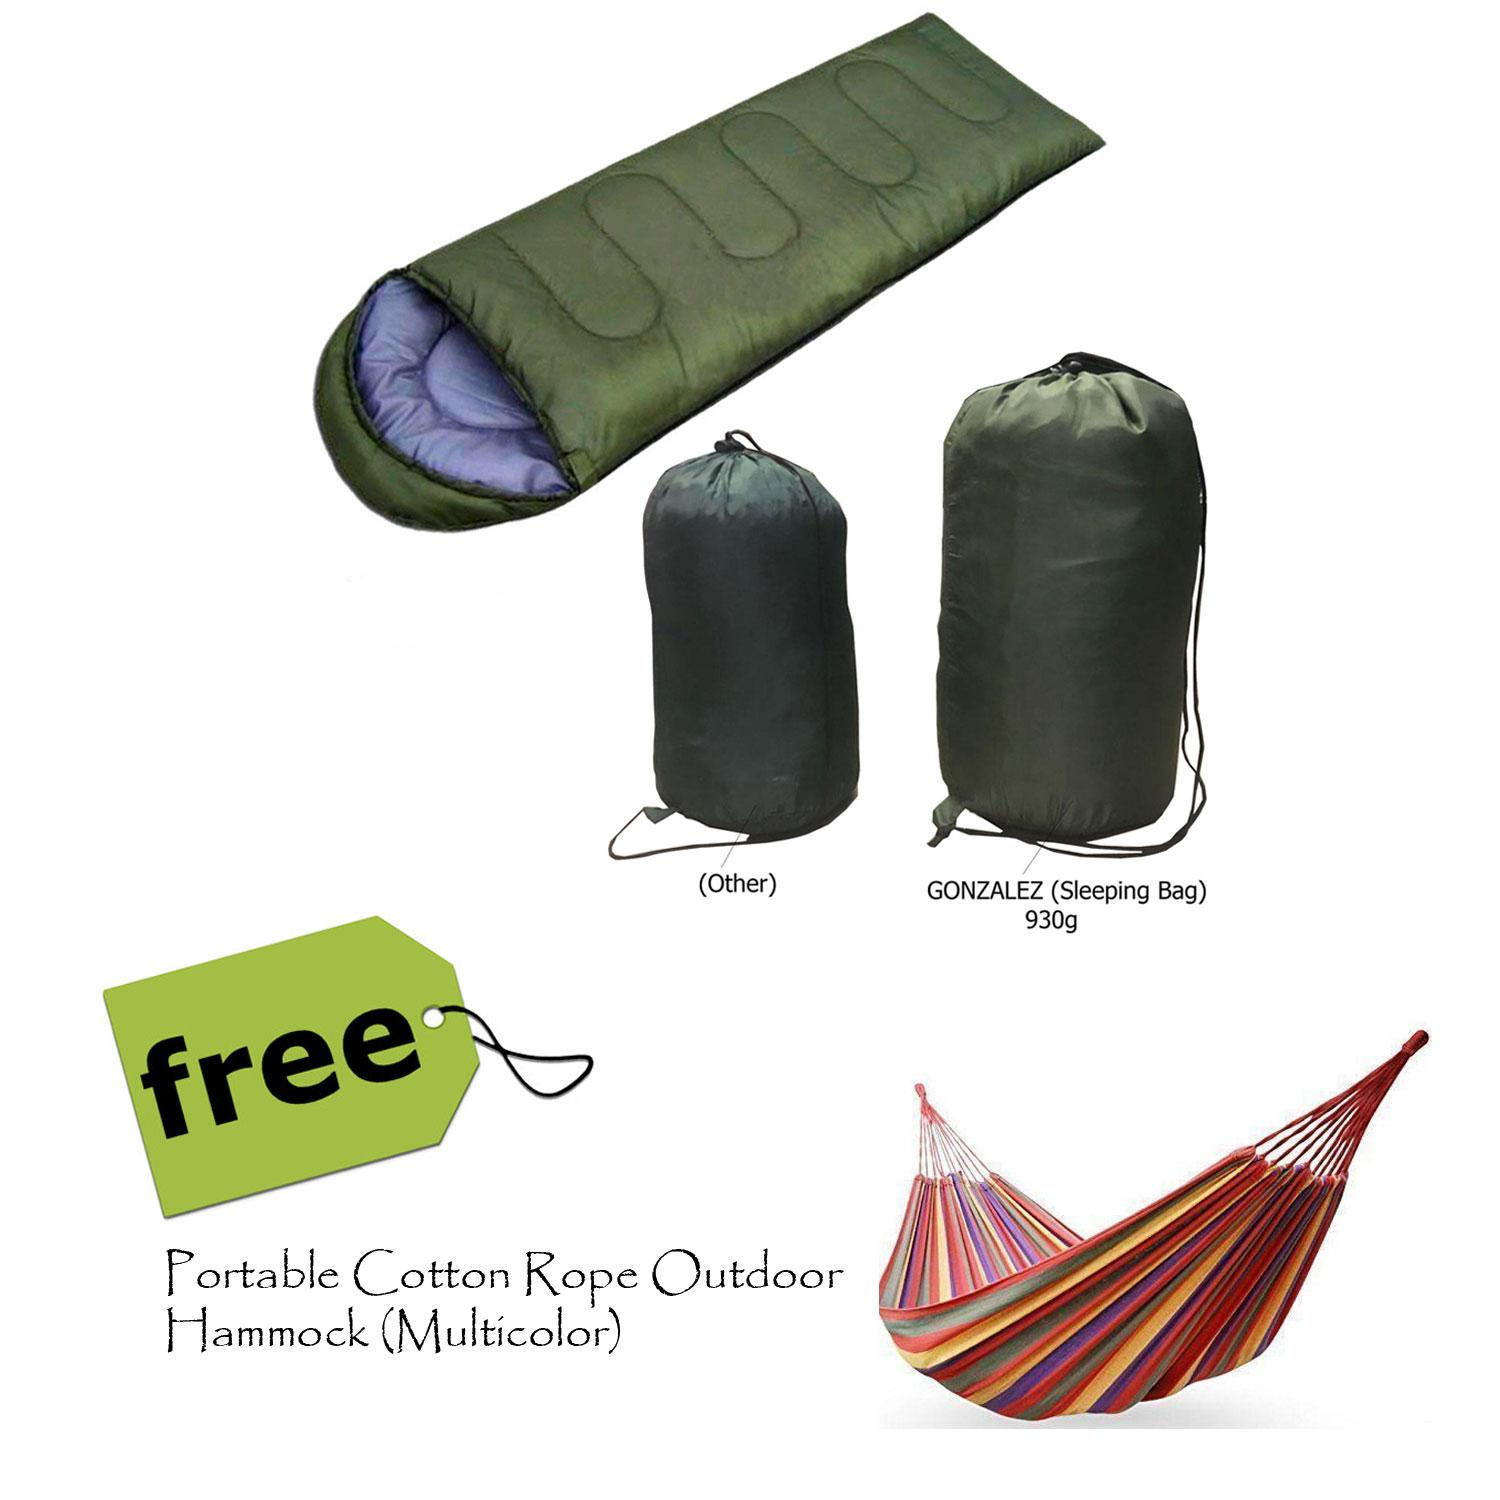 Camouflage Single Person Envelope Sleeping Bag With Carrying Bag For Kids Or Adults Outdoor Hiking Camping Tools Gear Sleeping Bags